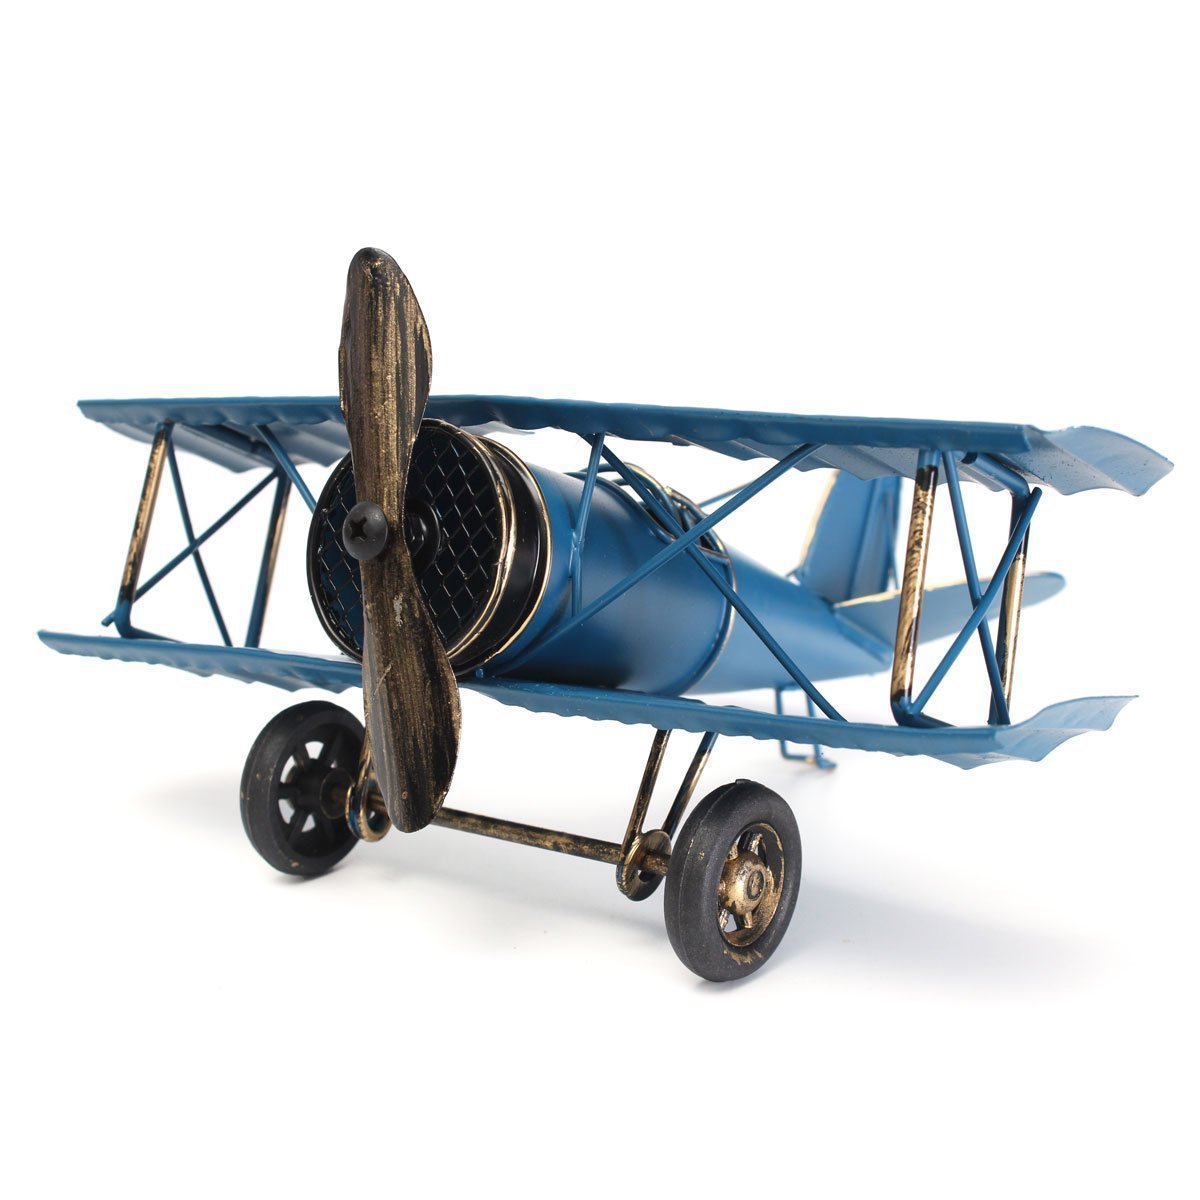 Large 8.5'' Retro Airplane Aircraft Model,Home Decor Ornament Toy,Home Office Desktop Decoration, Retro World War I German wings Model,ww1 aircraft Model (Blue) YZ